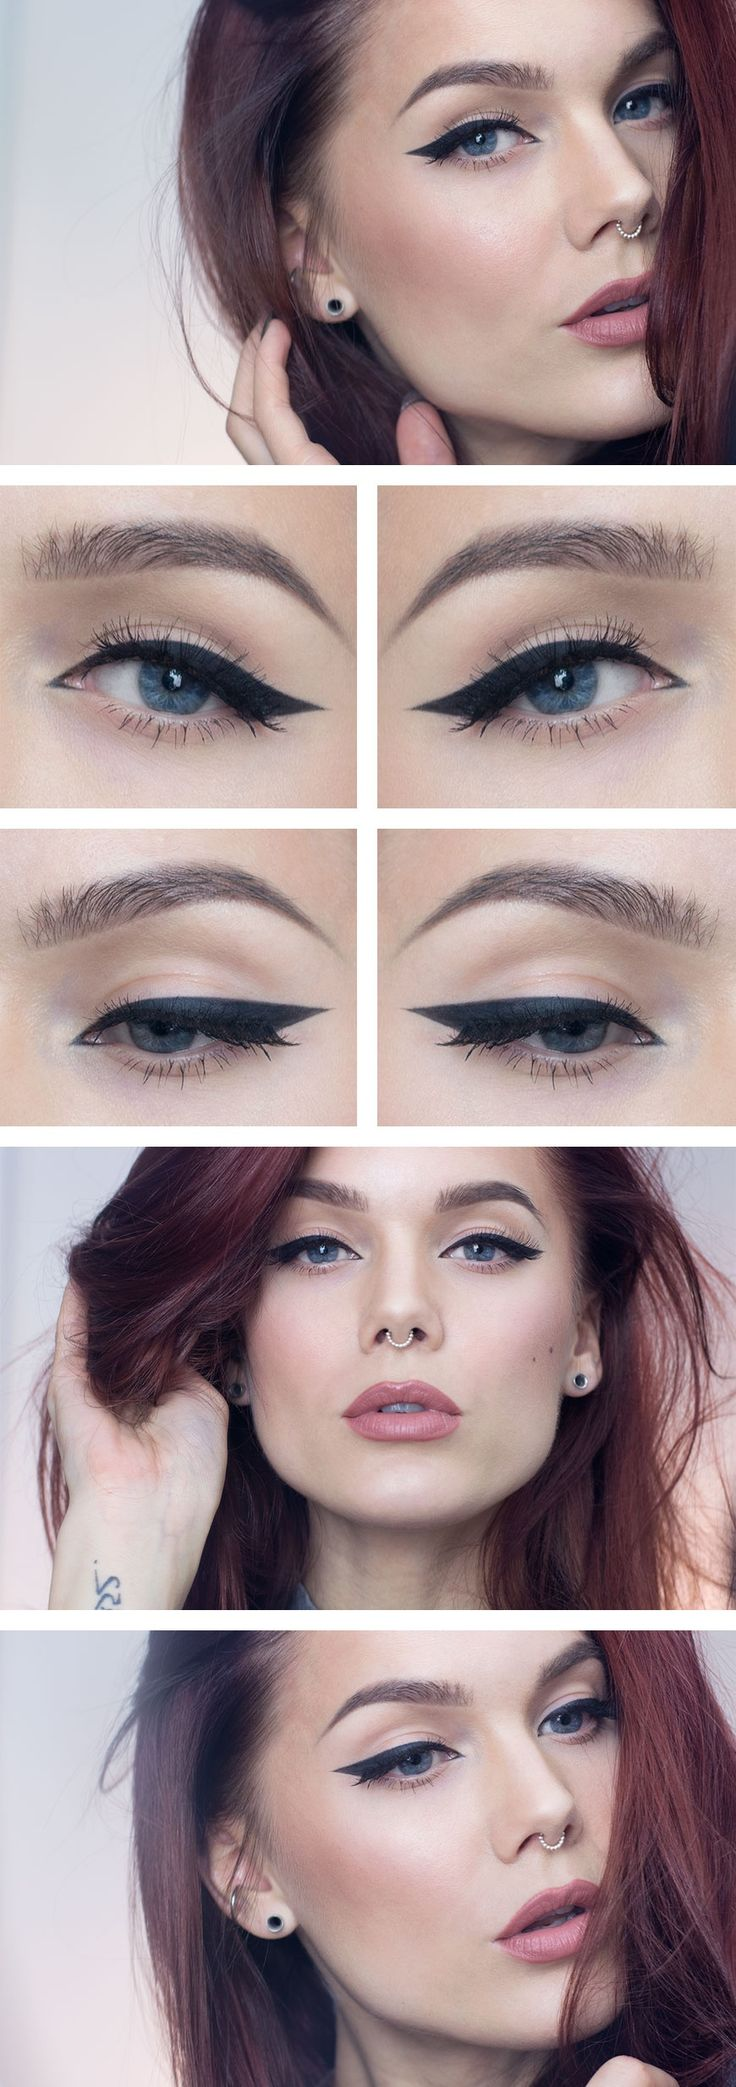 See more makeup tutorials on http://pinmakeuptips.com/to-fix-herself-up-a-little/